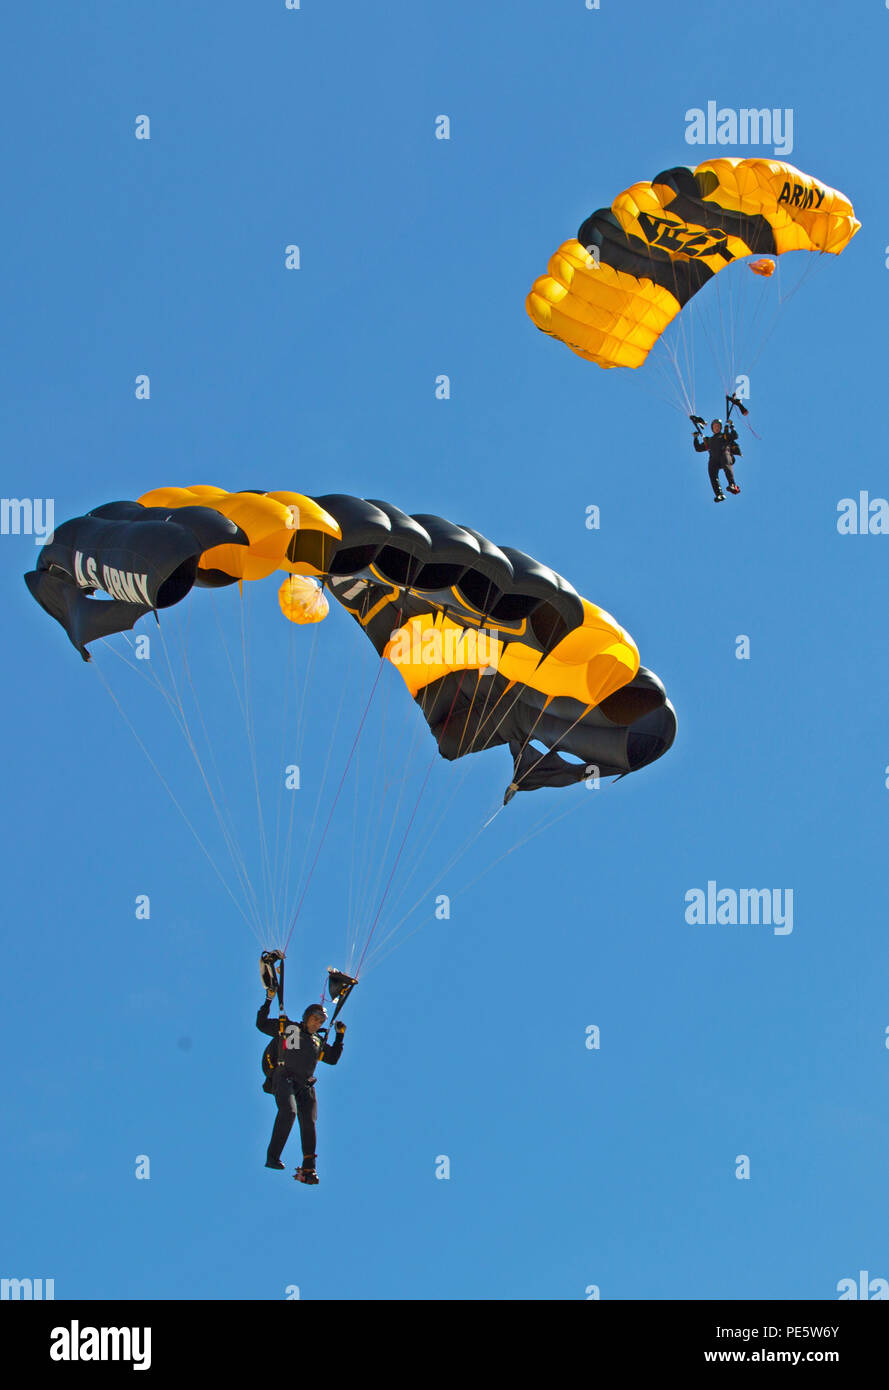 The Army's Golden Knights parachute team performs during the 2015 MCAS Miramar Air Show aboard Marine Corps Air Station Miramar, Calif., Oct. 2. The demonstration team jumps from more than 12,000 feet onto a target on the ground. (U.S. Marine Corps photo by Sgt. Uriel Avendano/Released) - Stock Image